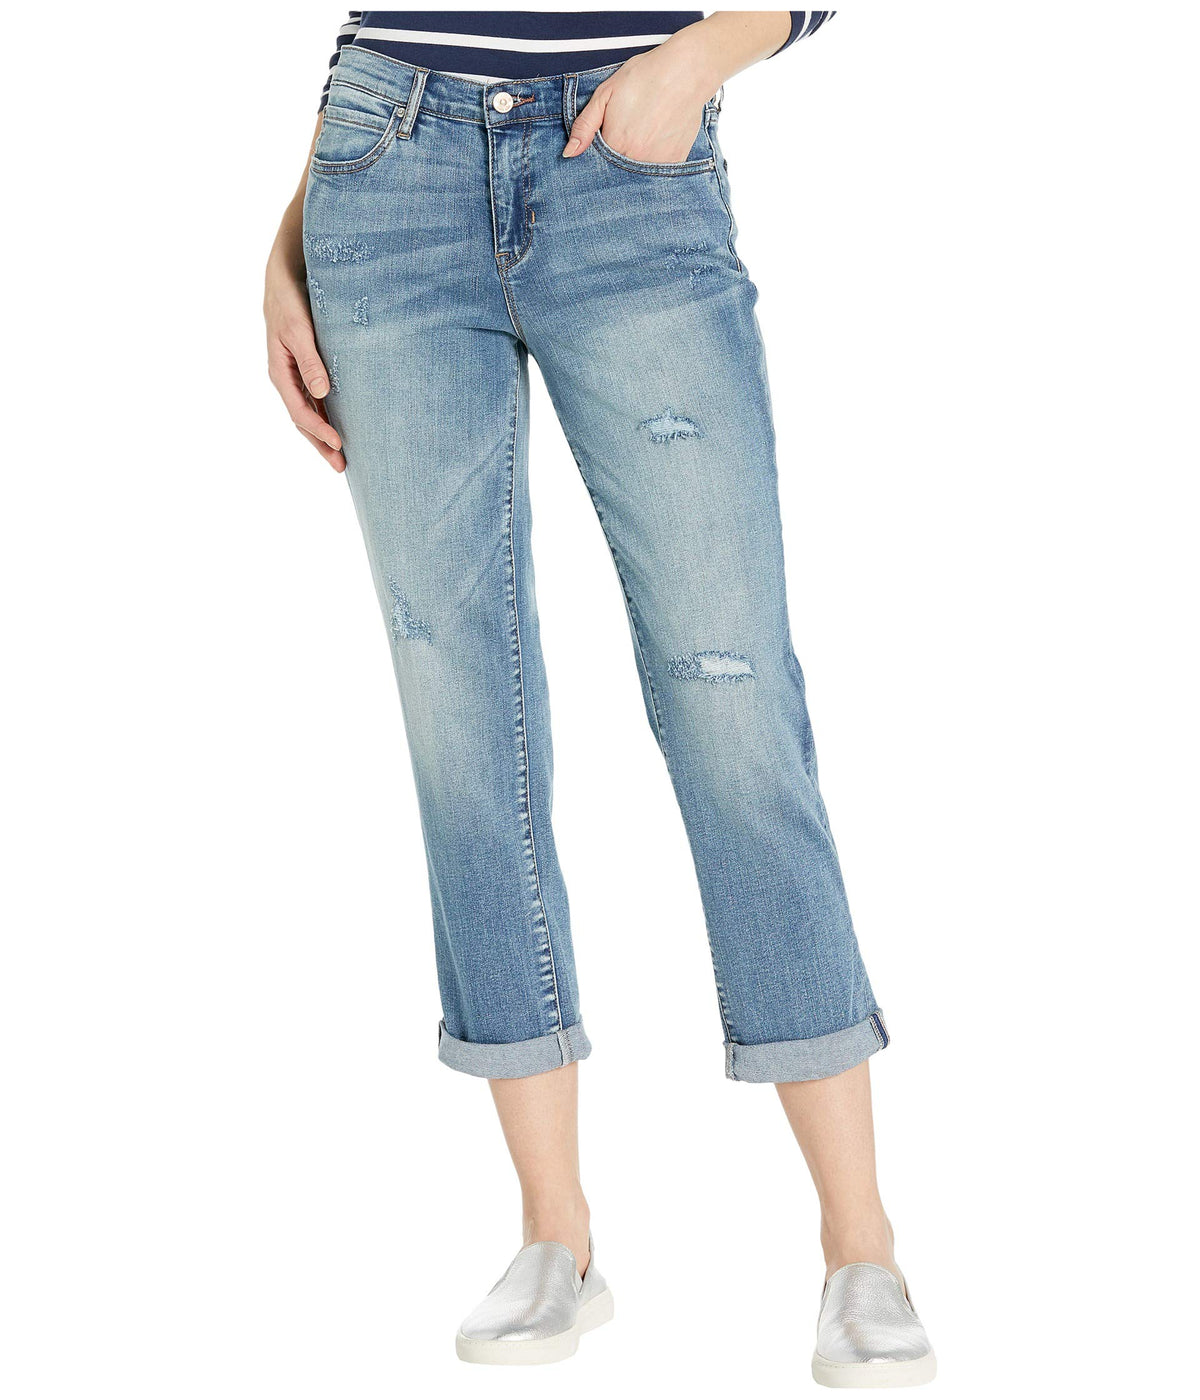 Nolita Boyfriend Jeans in Medium Blue